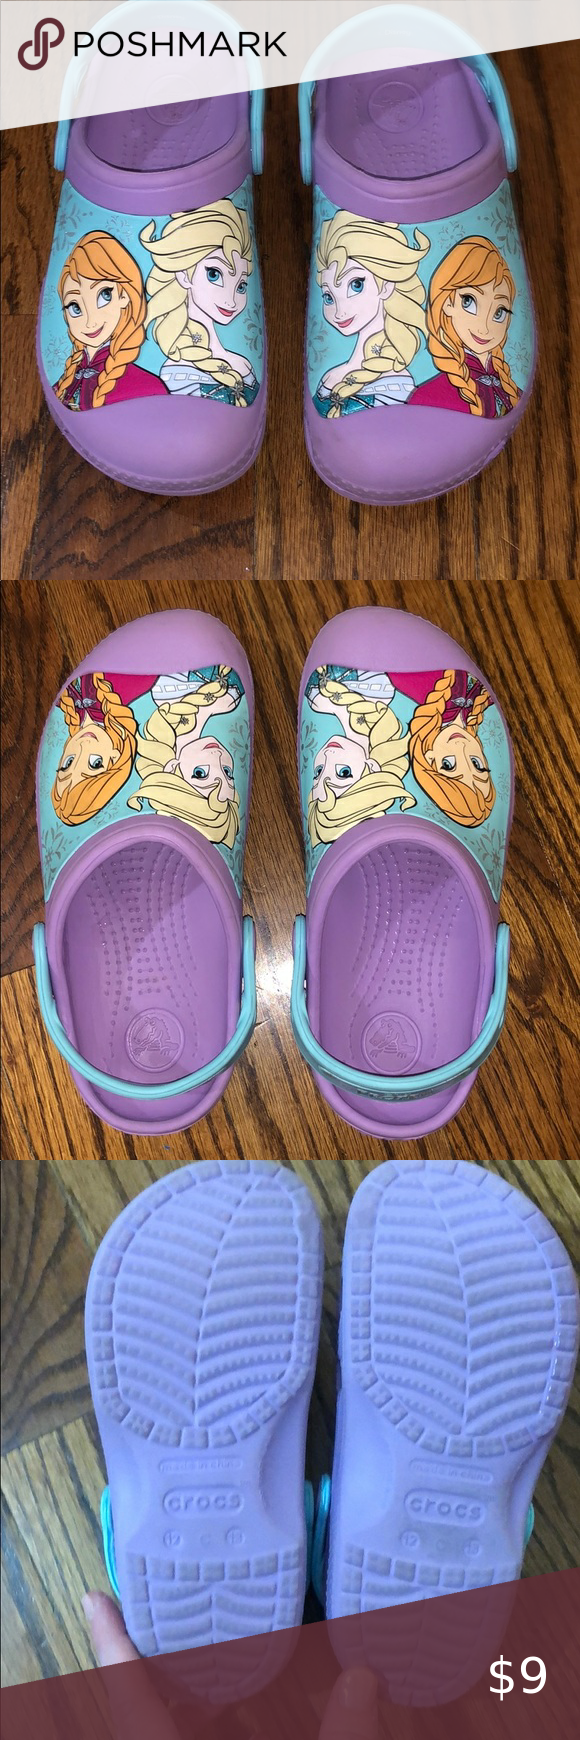 Girls Elsa and Anna Crocs size 12/13 in